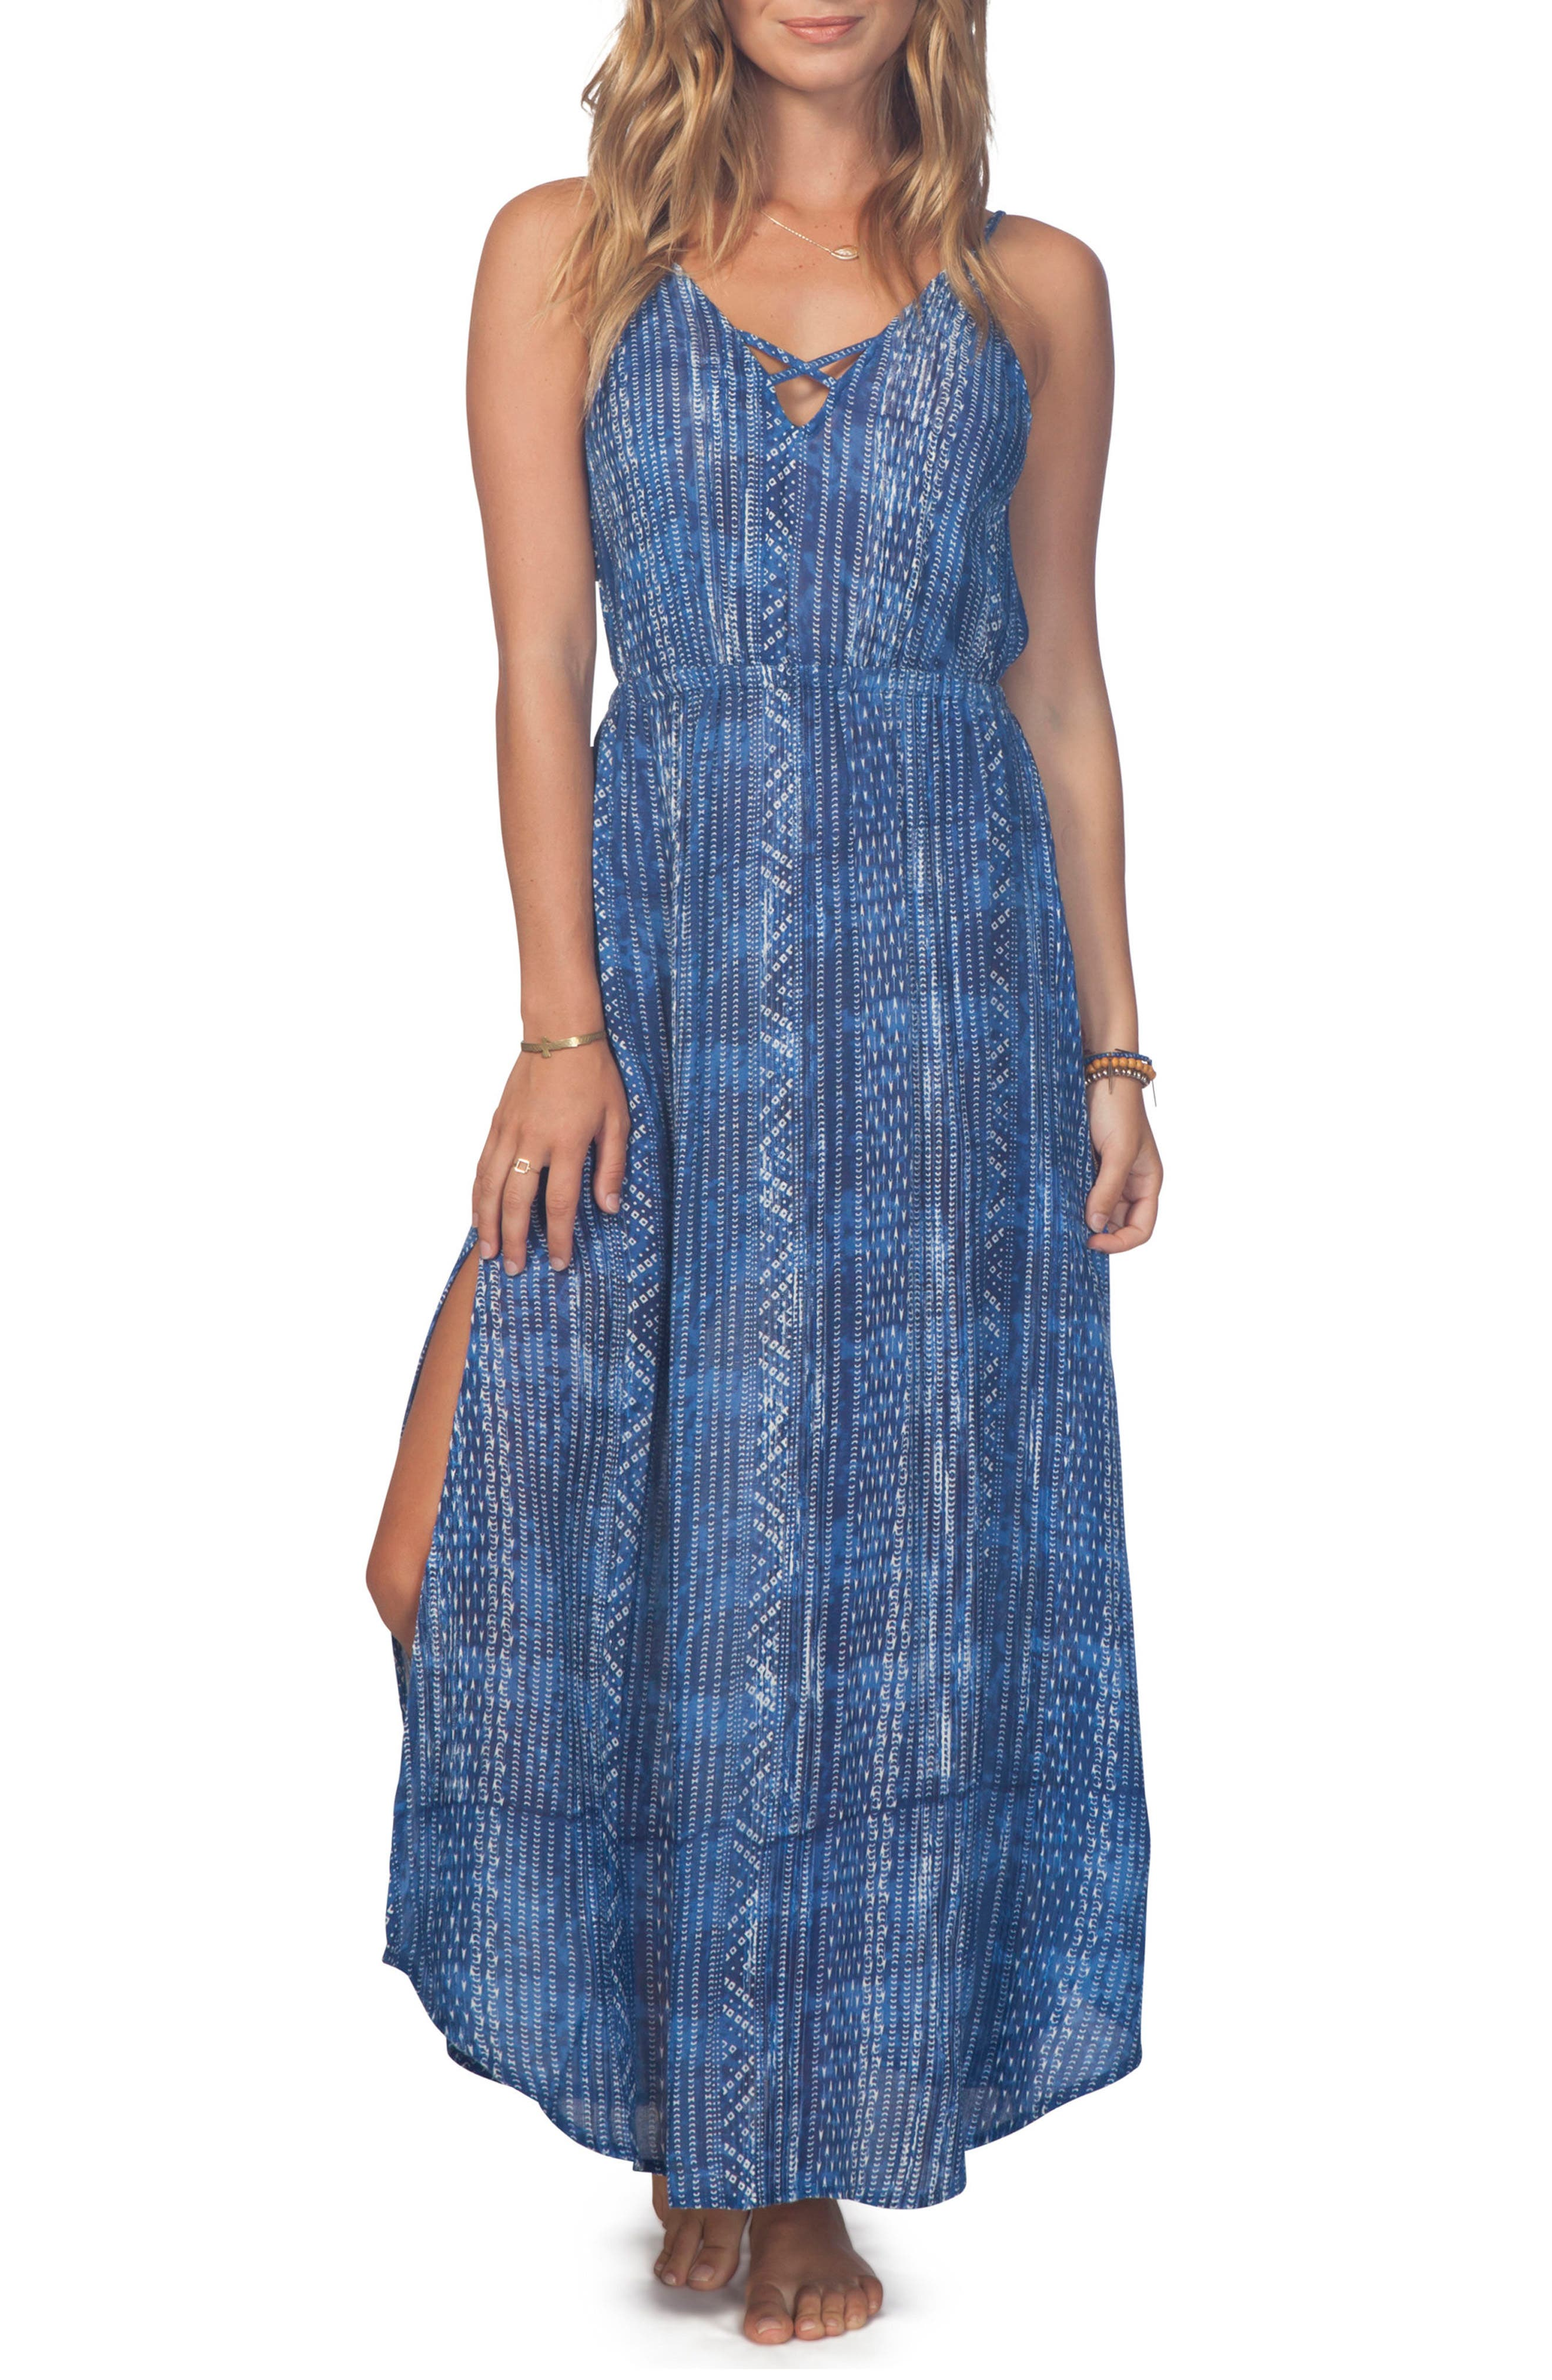 Blue Tides Maxi Dress,                             Main thumbnail 1, color,                             Blue